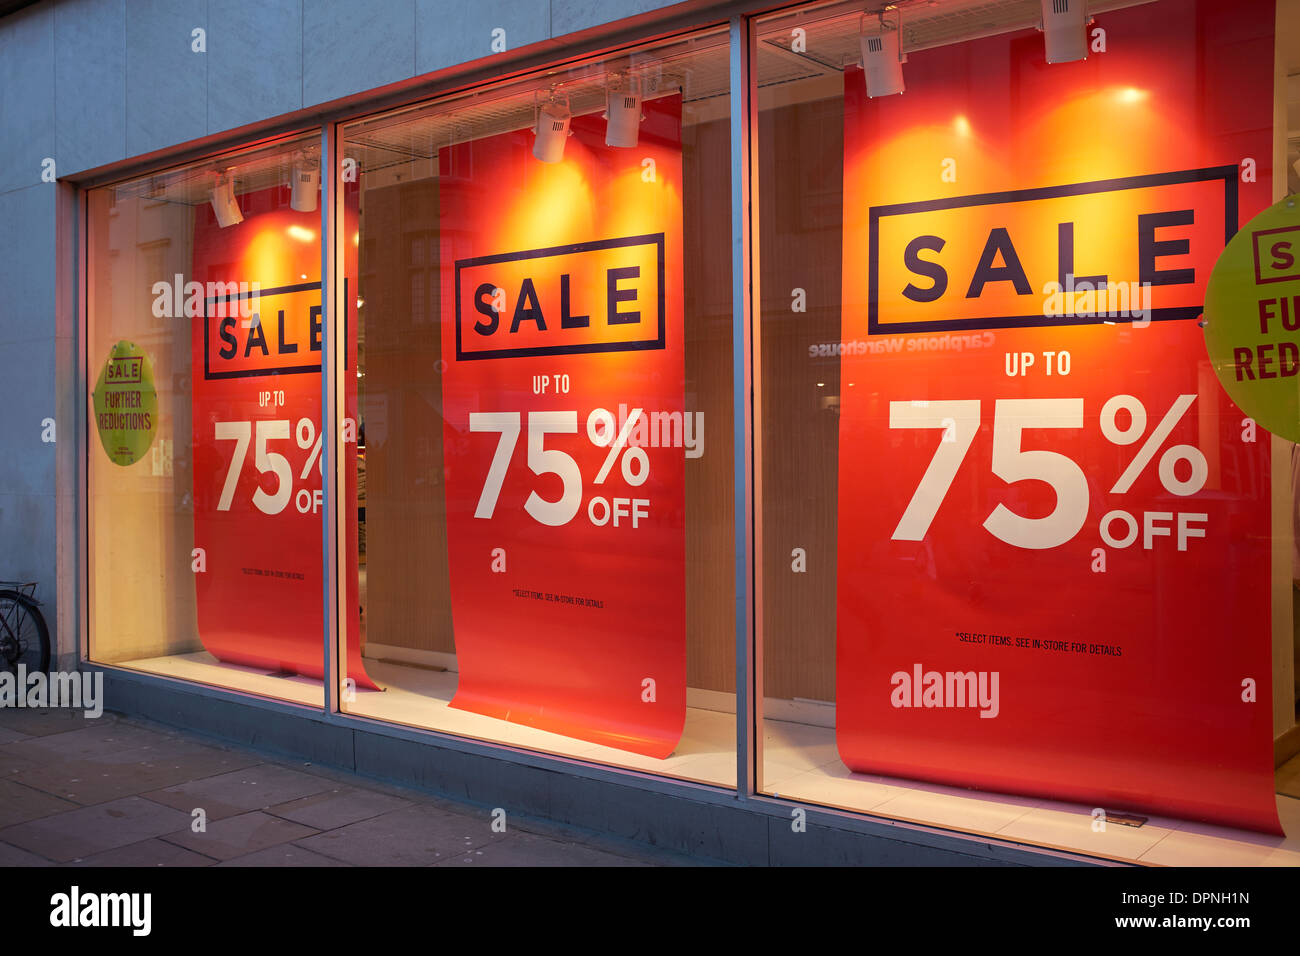 Sale up to 75% off banners in a shop window - Stock Image